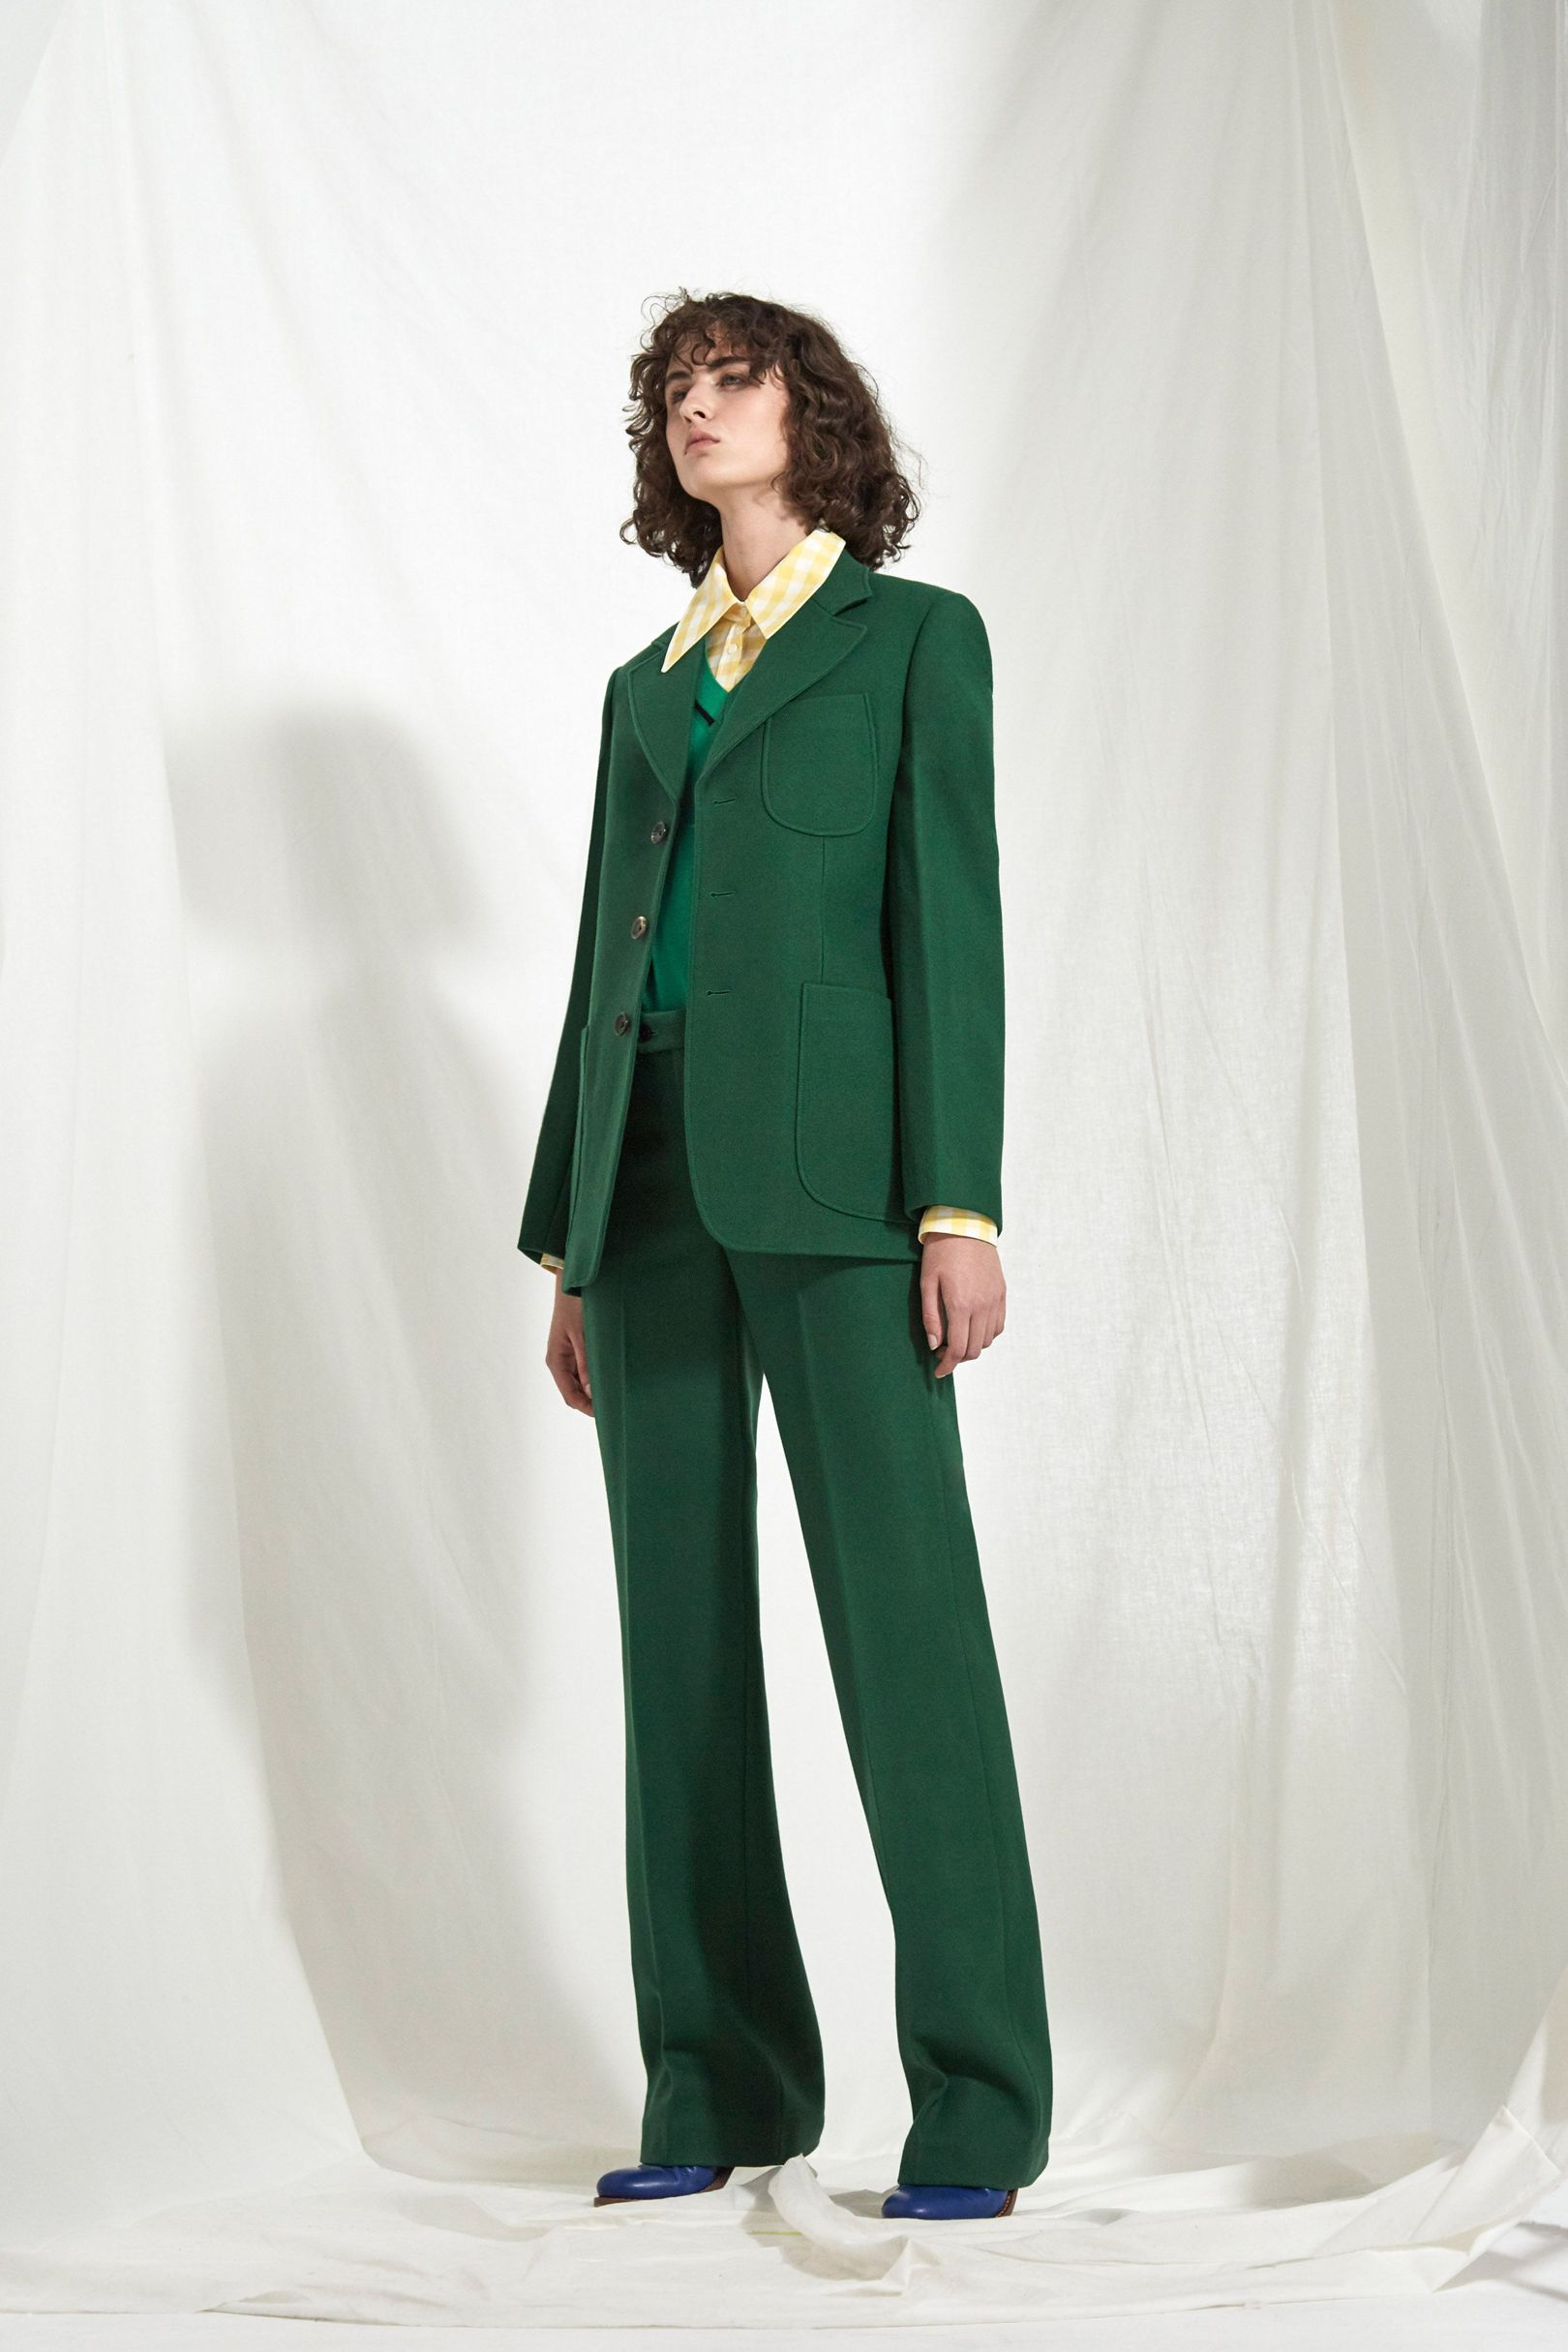 Green fashion shot from joseph resort 2018 collection